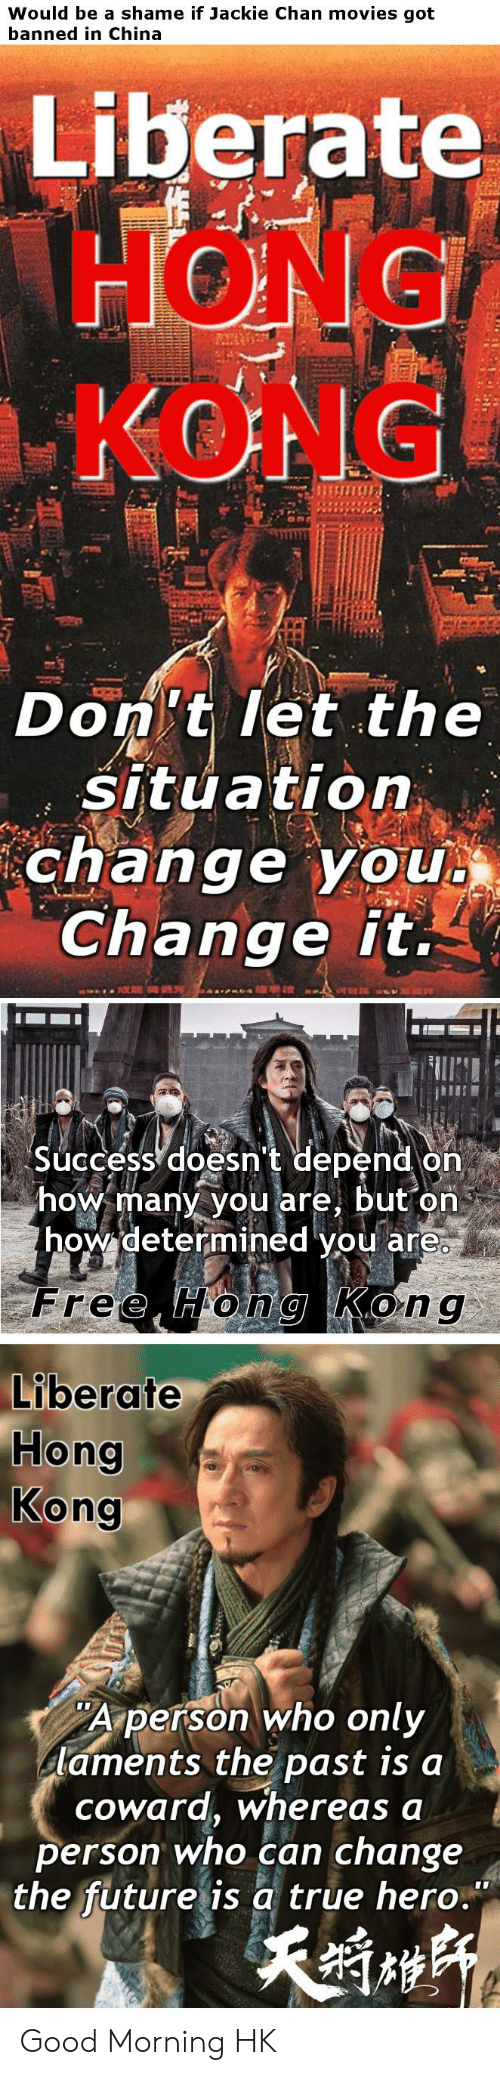 """Future, Jackie Chan, and Movies: Would be a shame if Jackie Chan movies got  banned in China  Liberate  HONG  KONG  Don't let the  situation  change you  Change it.  Success doesn't depend on  how many you are, but on  how determined you are  Free Hong Kong  Liberate  Hong  Kong  Aperson who only  laments the past is a  coward, whereas a  person who can change  the future is a true hero."""" Good Morning HK"""